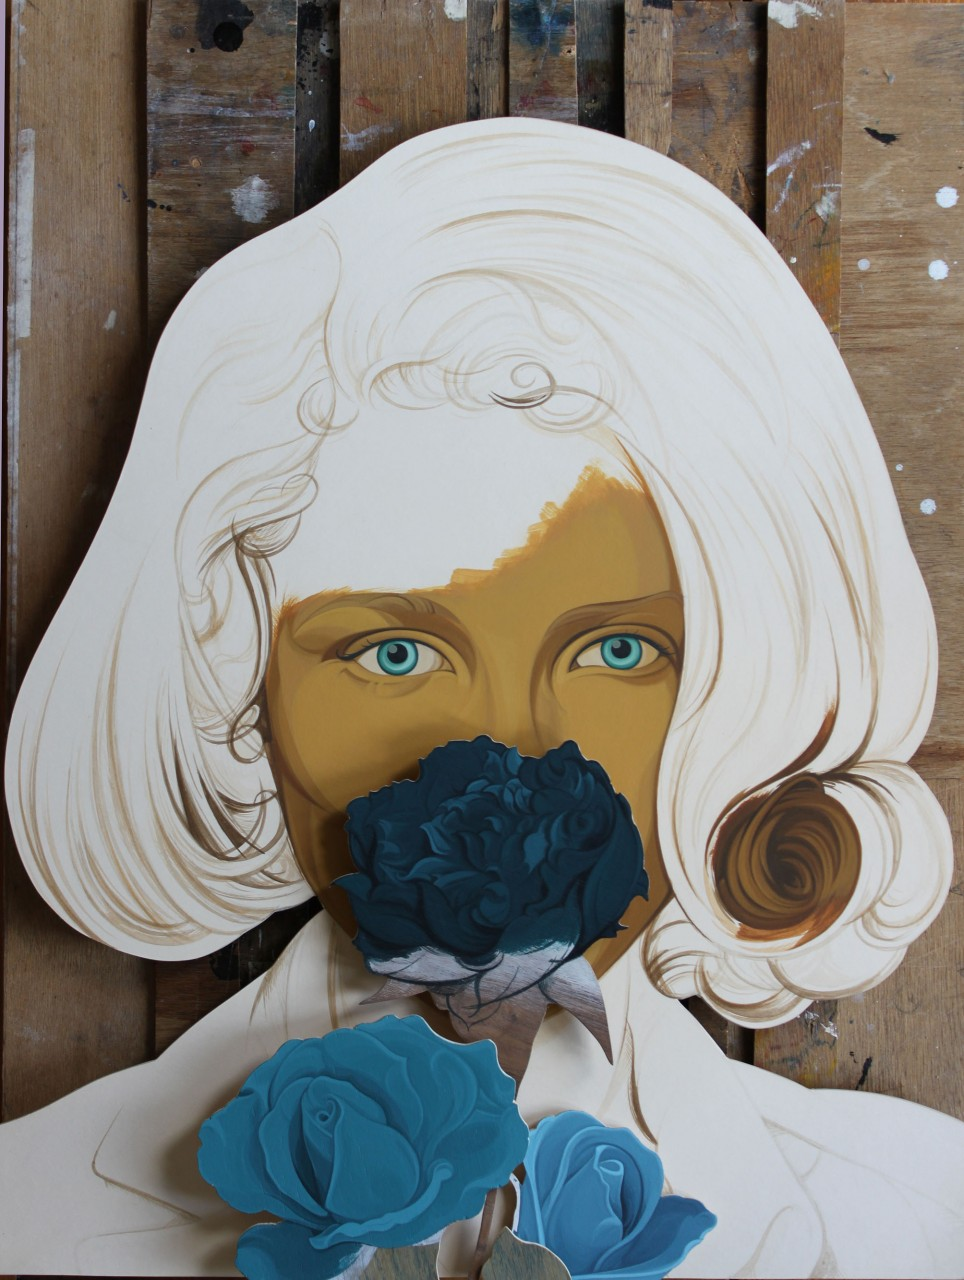 Flo, acrylic on board and wood offcuts, 66 x45x 8cm